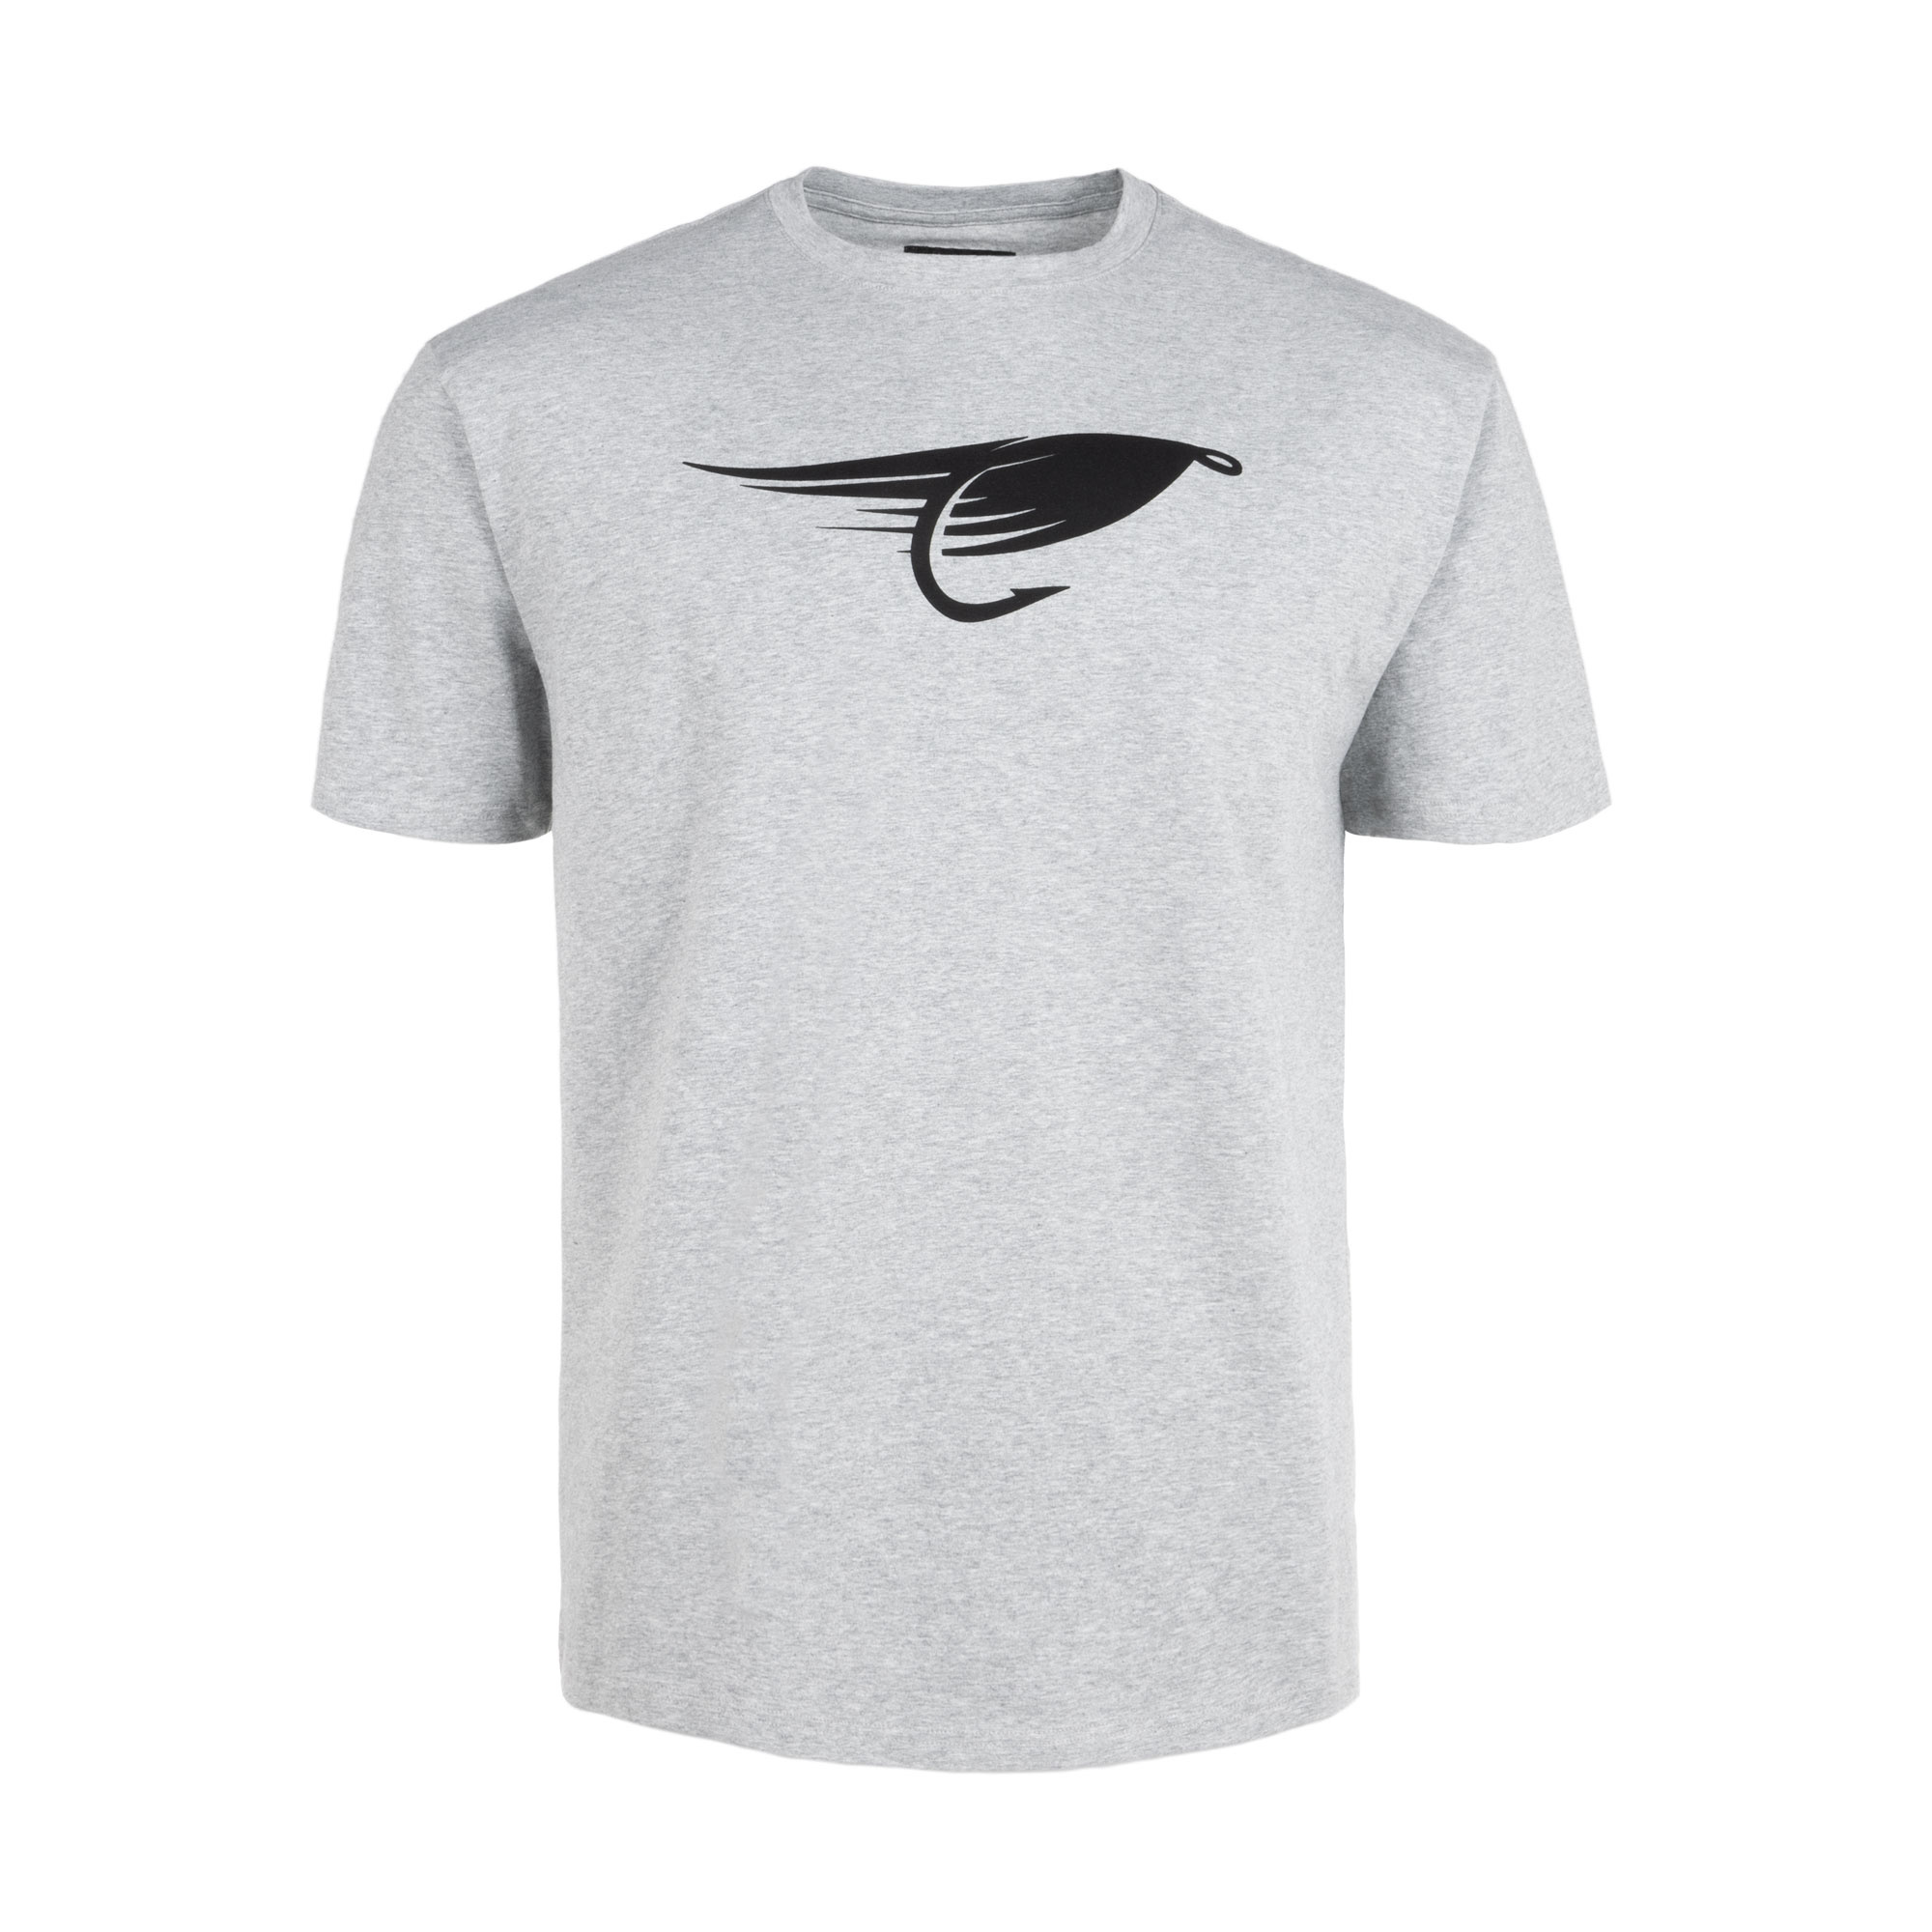 Fly T-Shirt Heather Grey